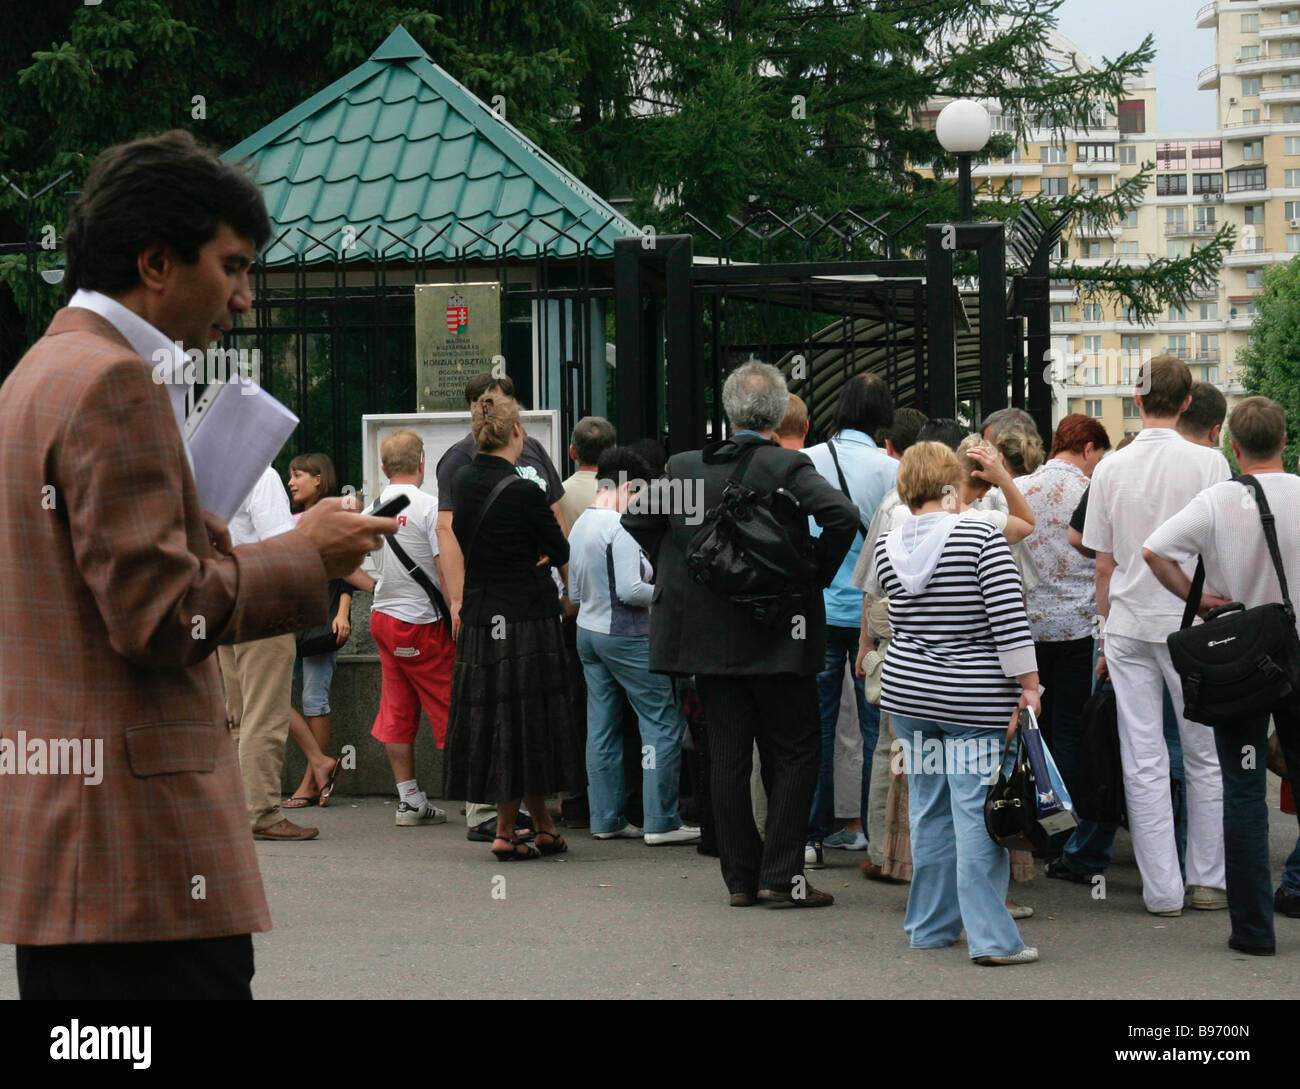 Russian citizens lining up to get visas at the consular department of the Hungarian embassy in Moscow - Stock Image